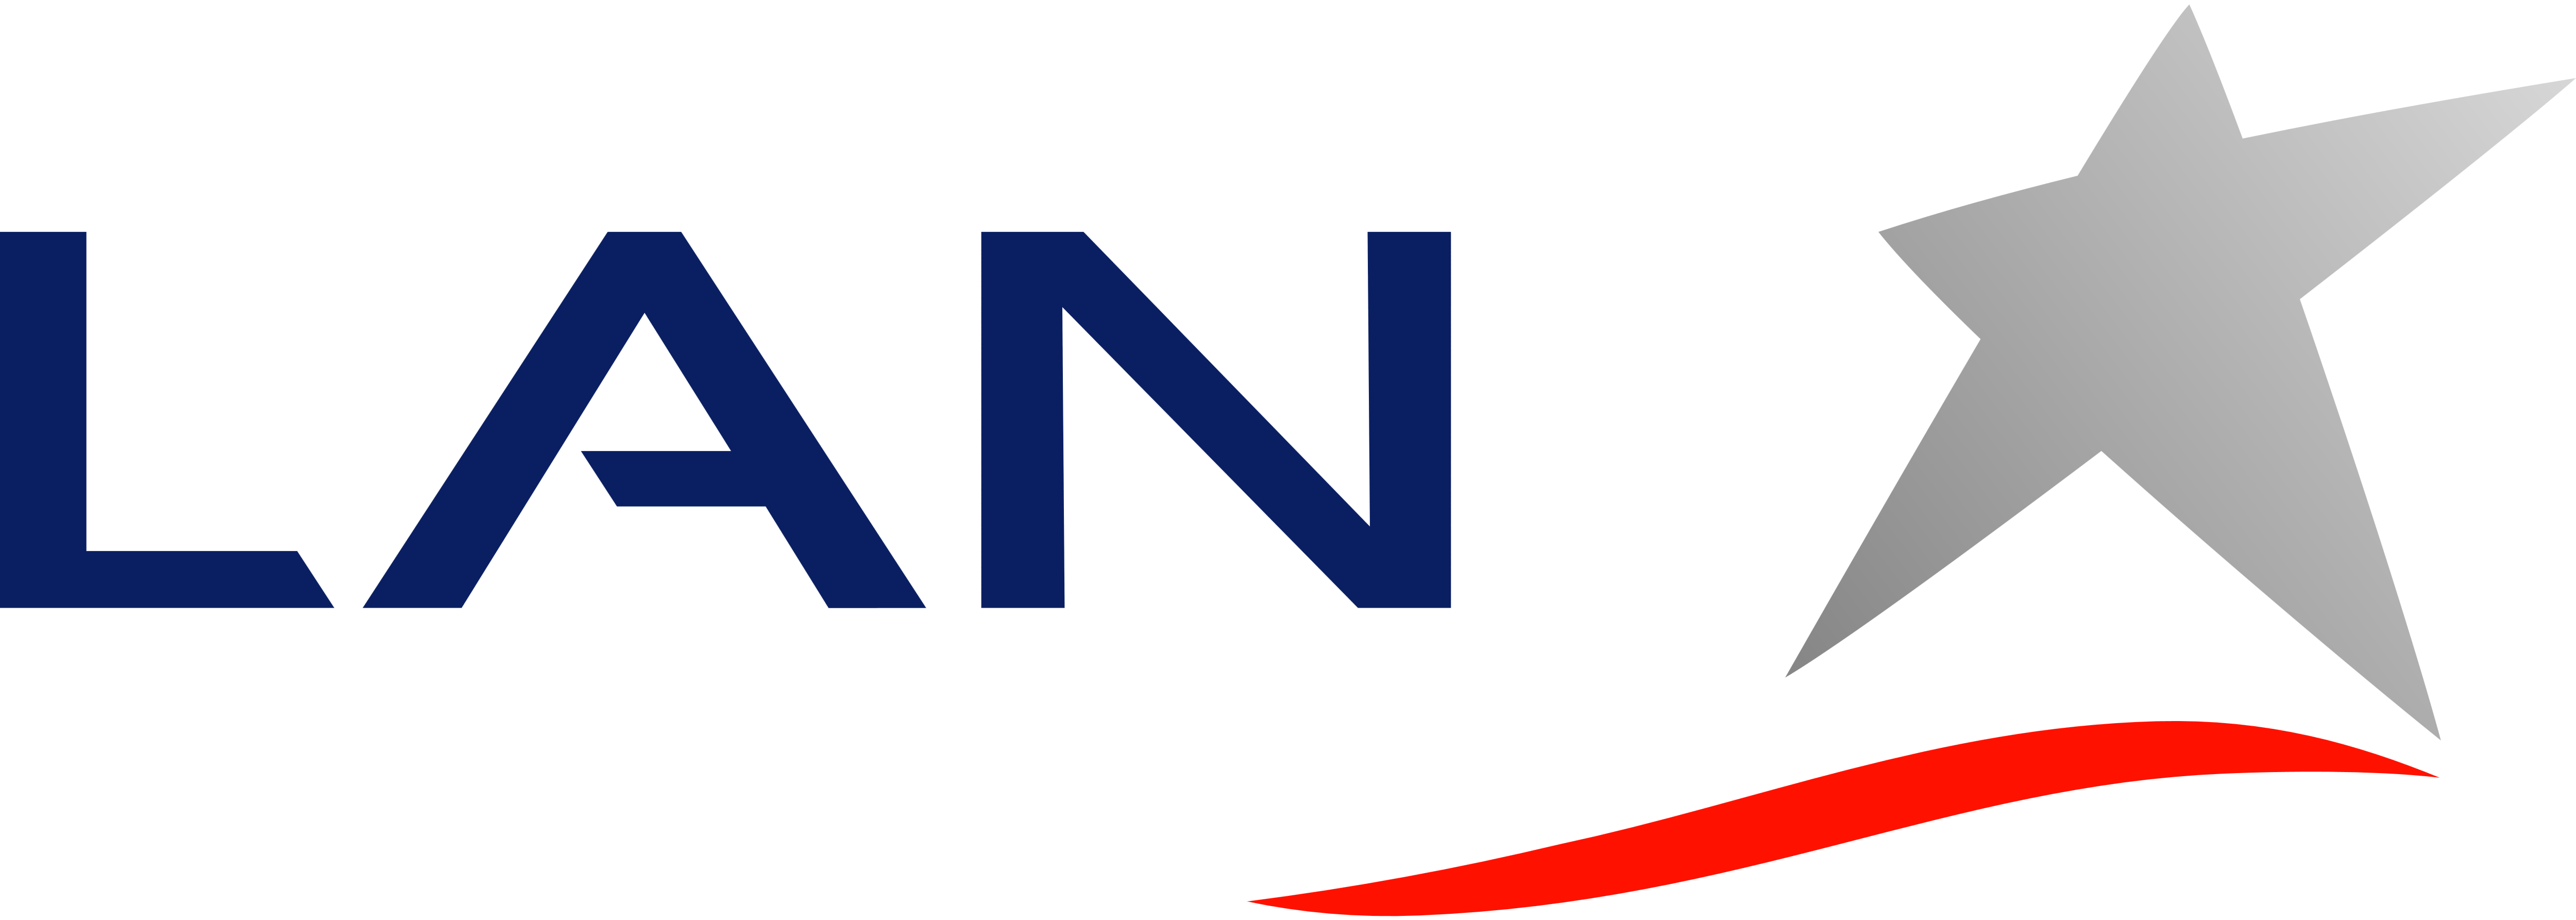 LAN and TAM Airlines, TAM Linhas Aéreas. TAM Airlines Logo - Aerosvit Airlines Logo PNG